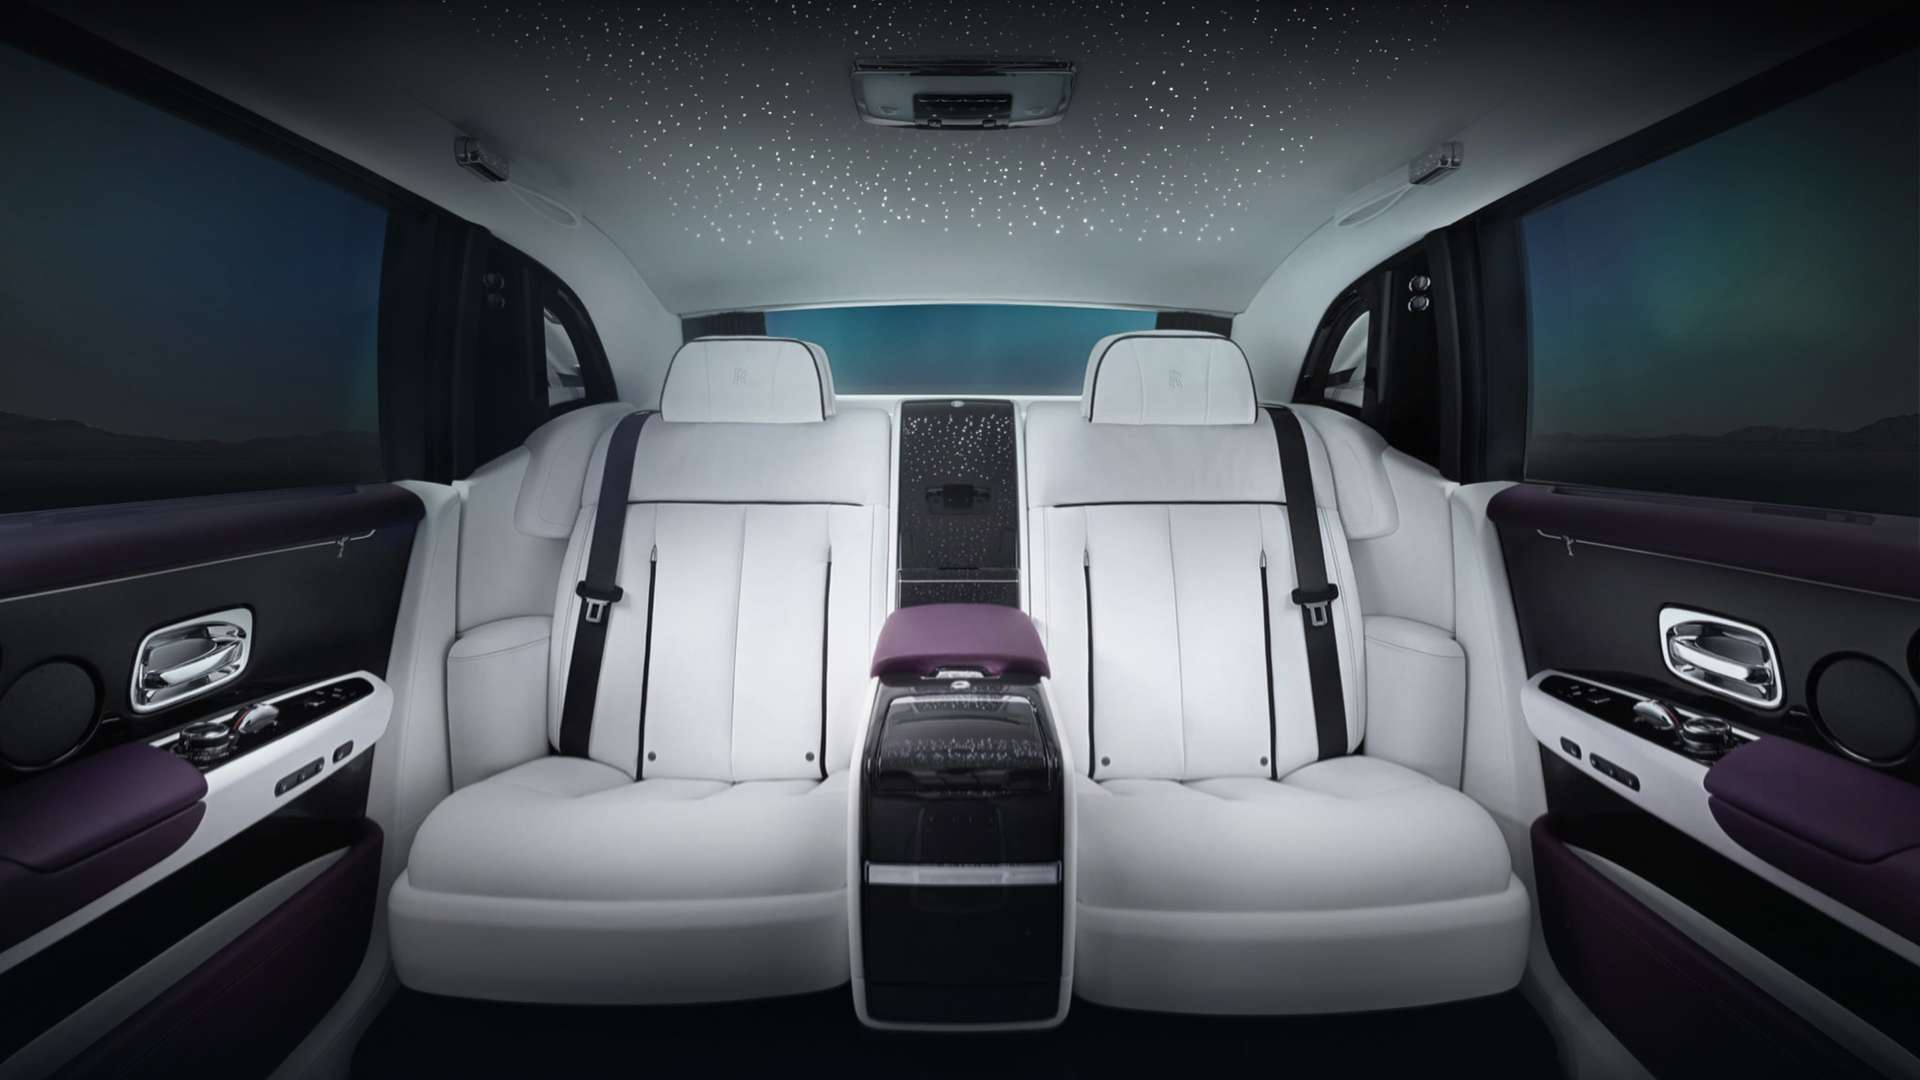 Interior seating of Rolls-Royce Phantom Extended Wheelbase